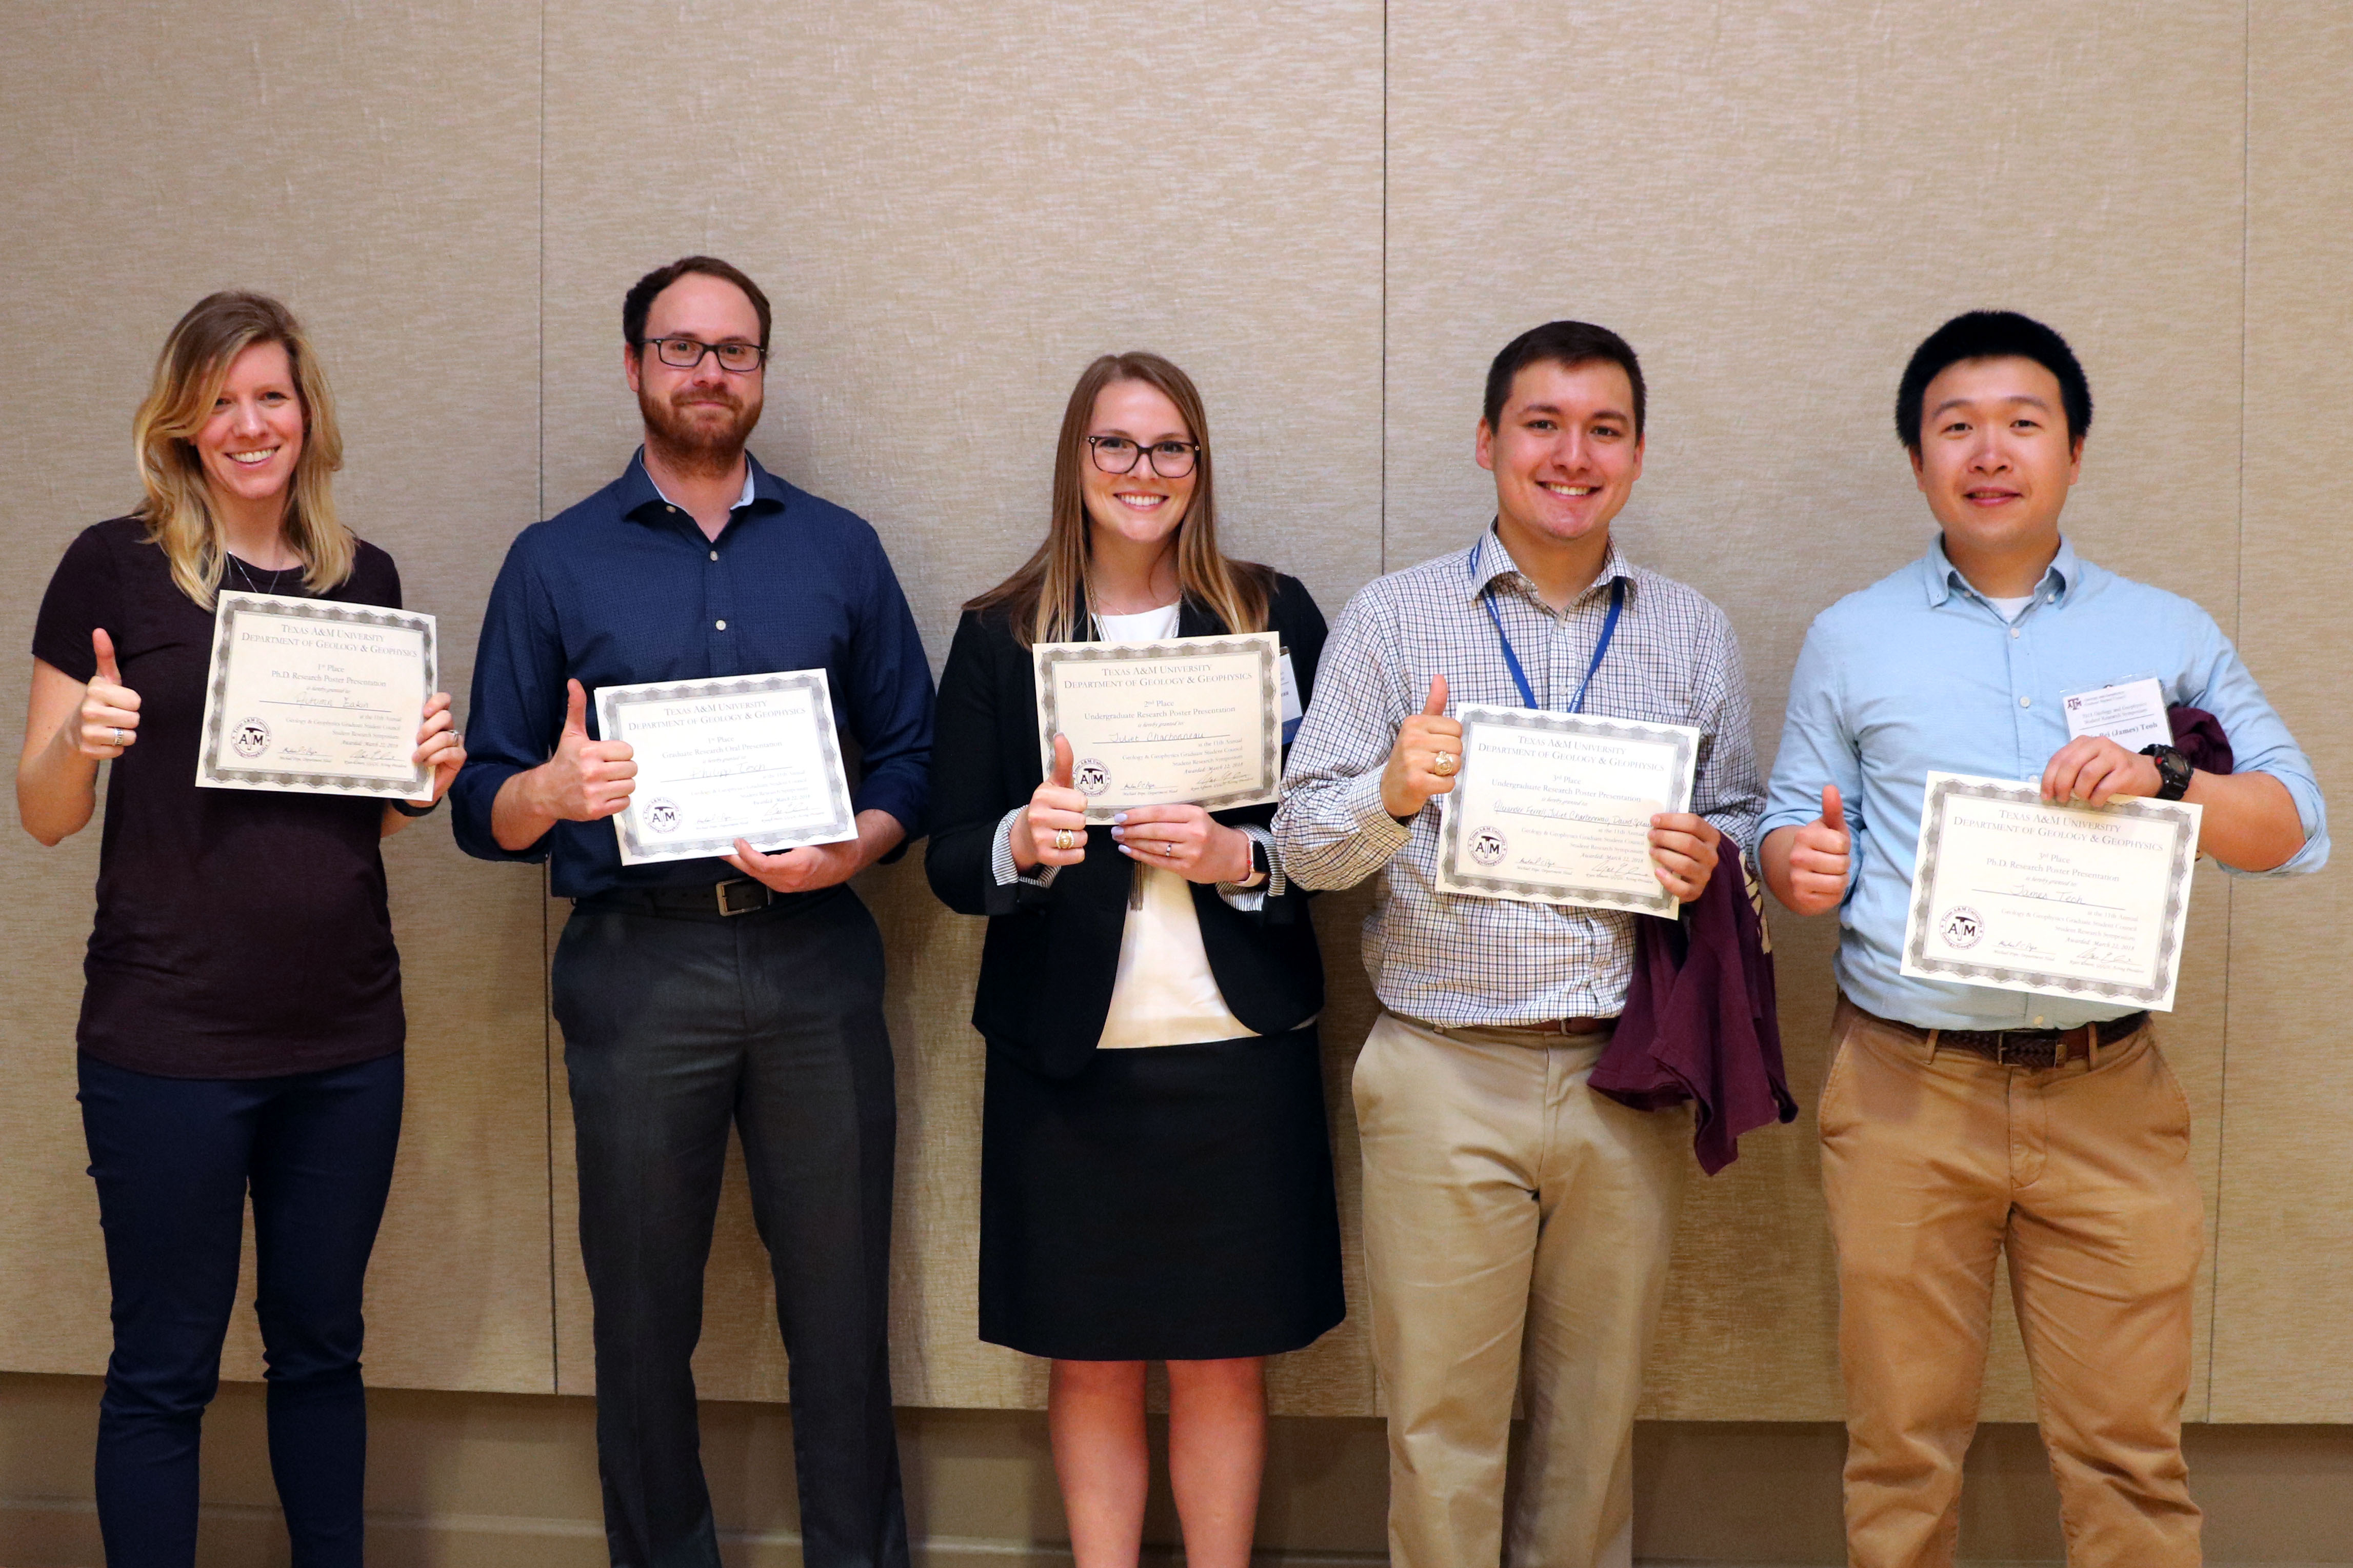 2018 Symposium Student Winners (left to right): Autumn Eakin, Philipp Tesch, Juliet Charbonneau, Alexander Ferell, and James Teoh. (Photo Credit: Cristina Figueroa)